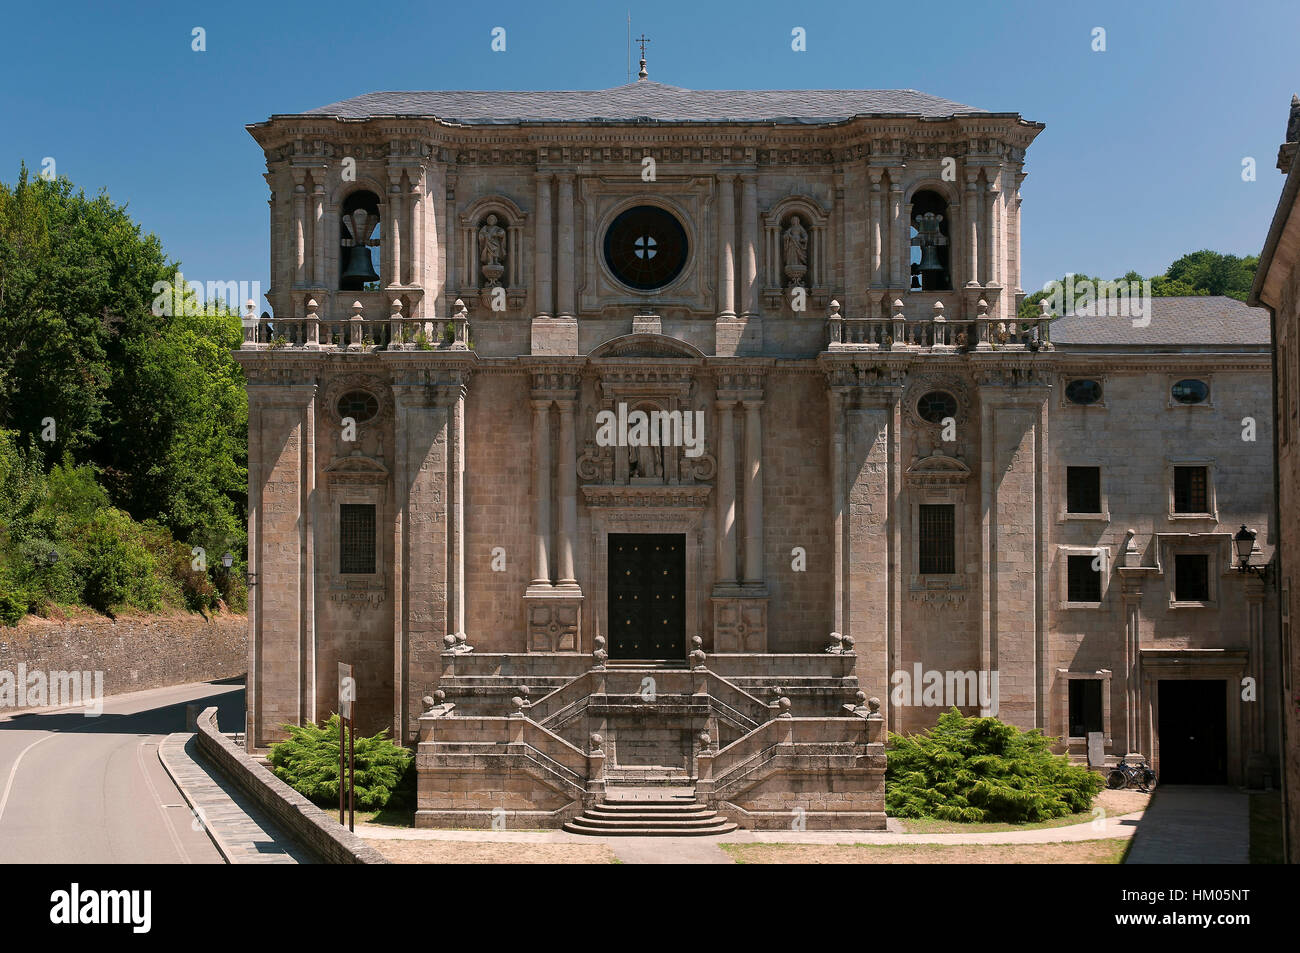 Monastery Of St Julian Of Samos Founded In The 6th Century Lugo Stock Photo Alamy